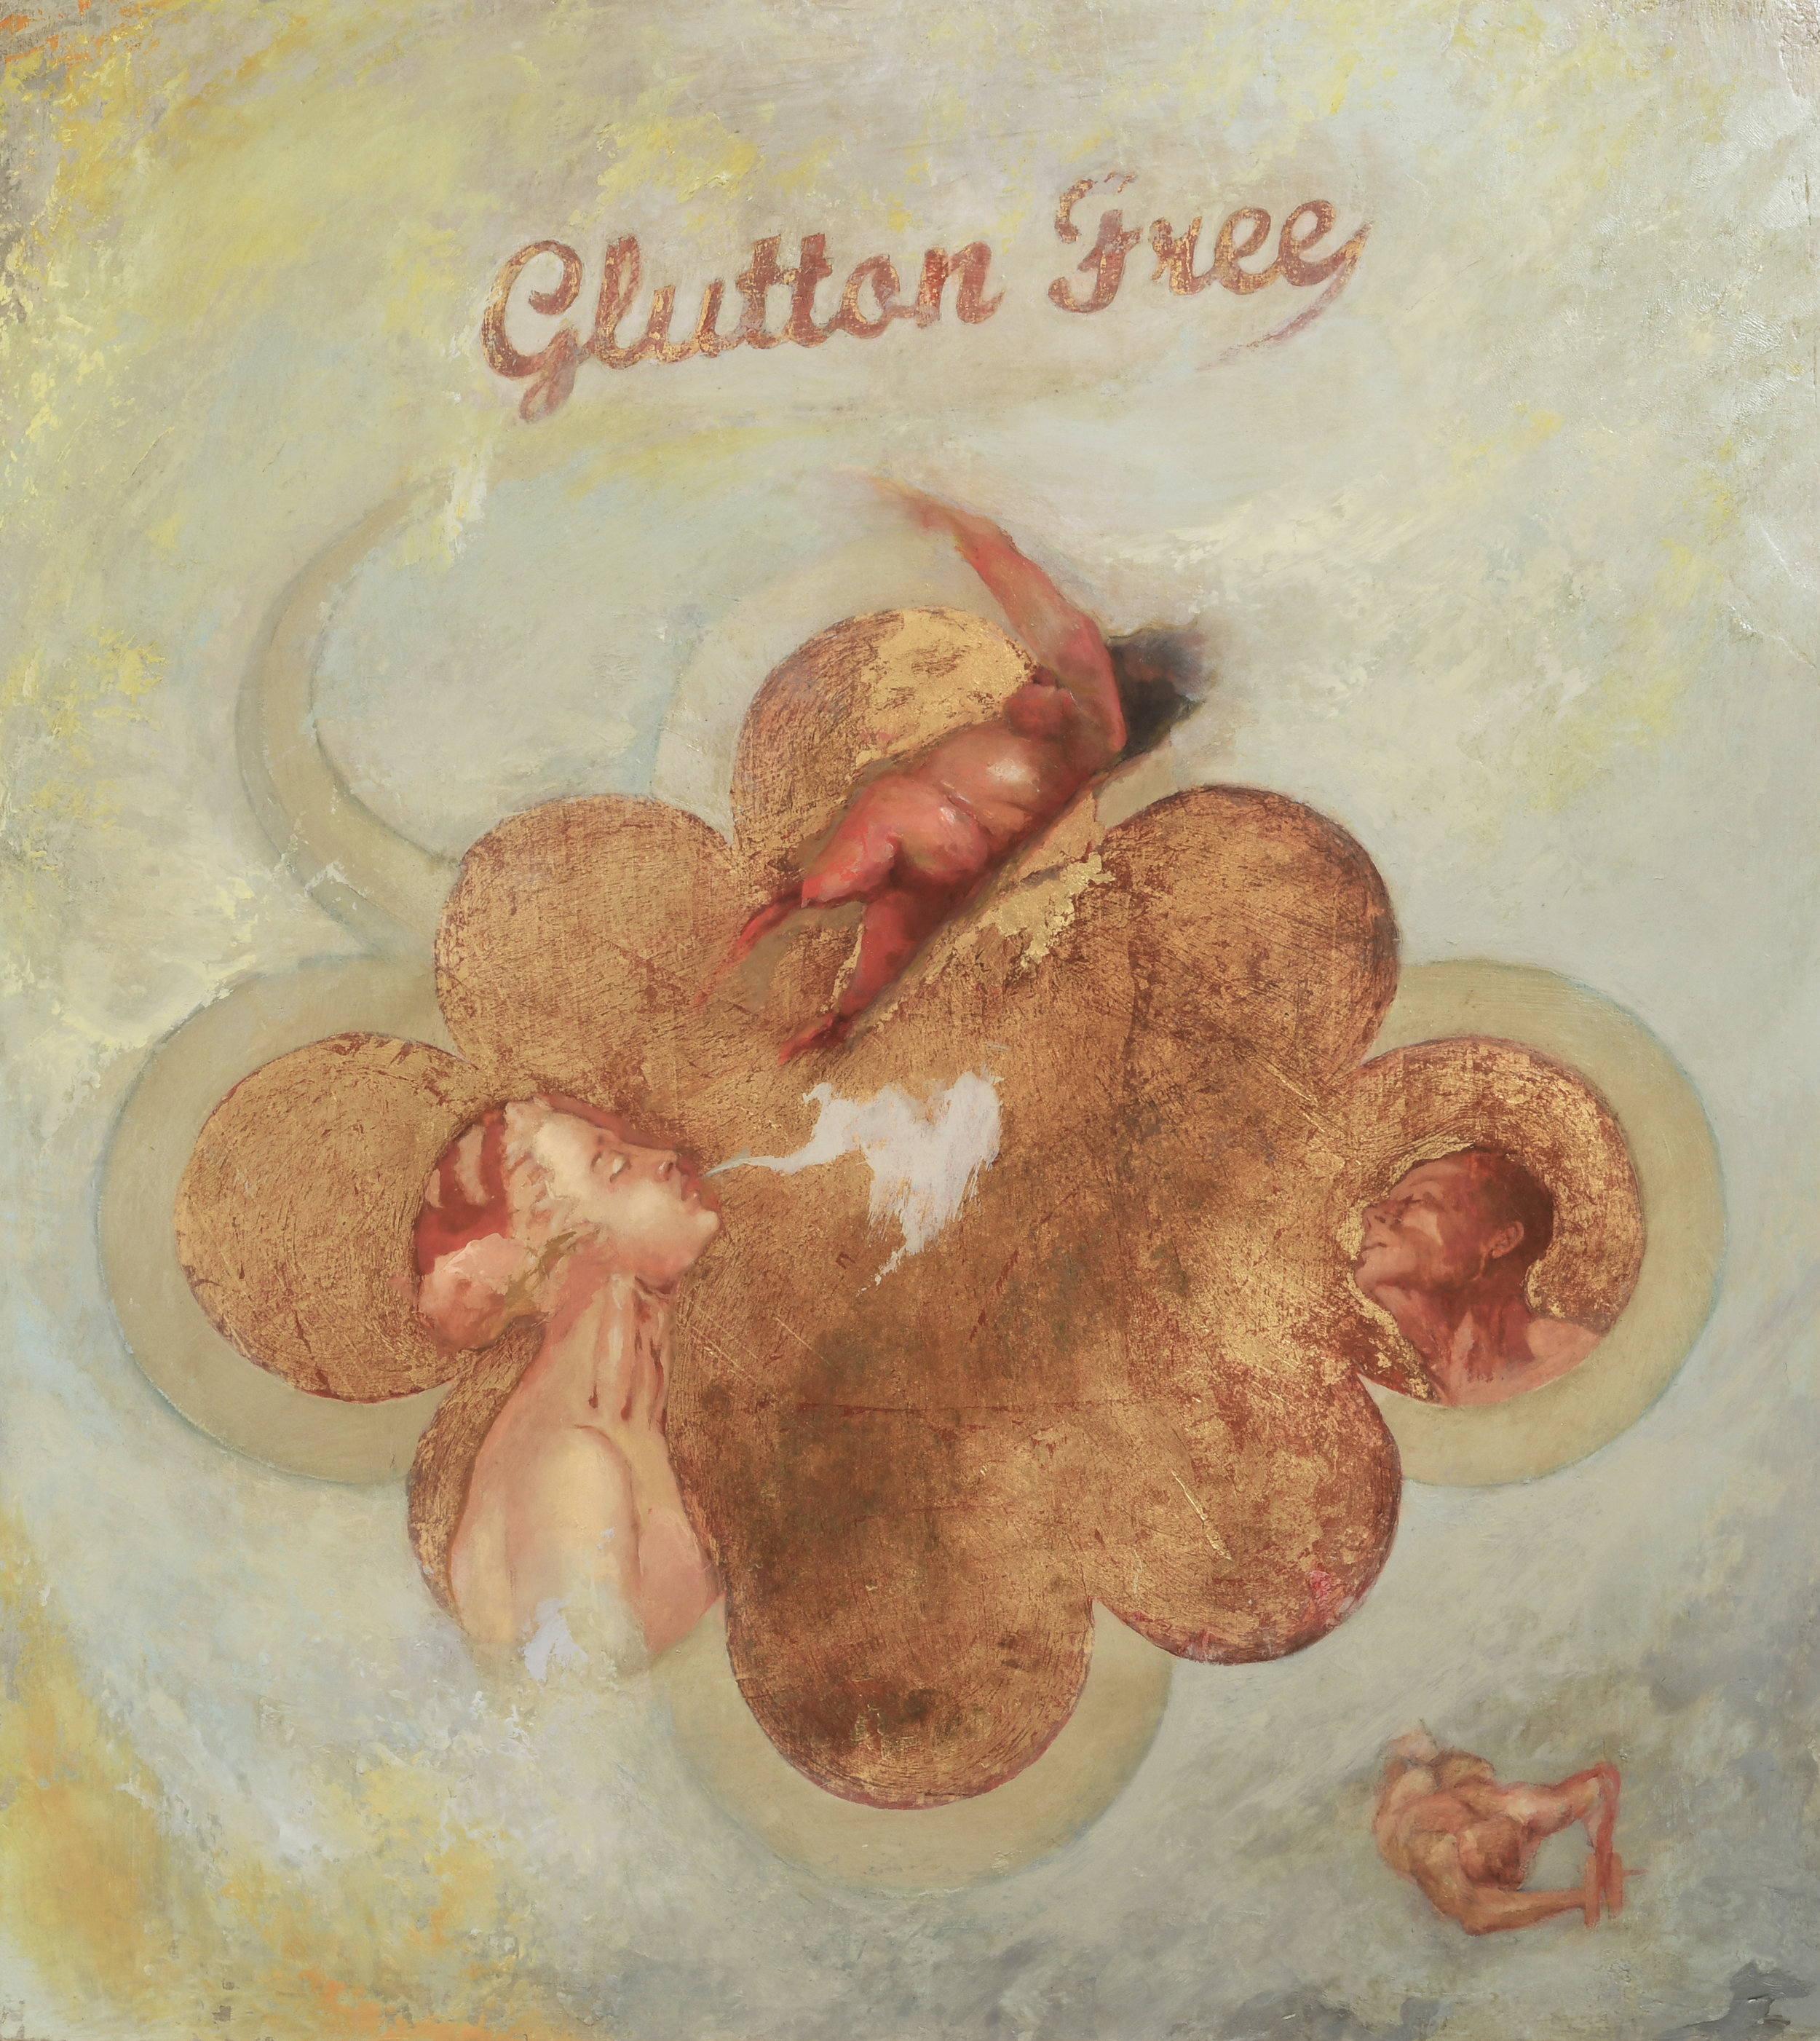 Glutton Free 18 x 20 in.Oil and gold leaf on board.